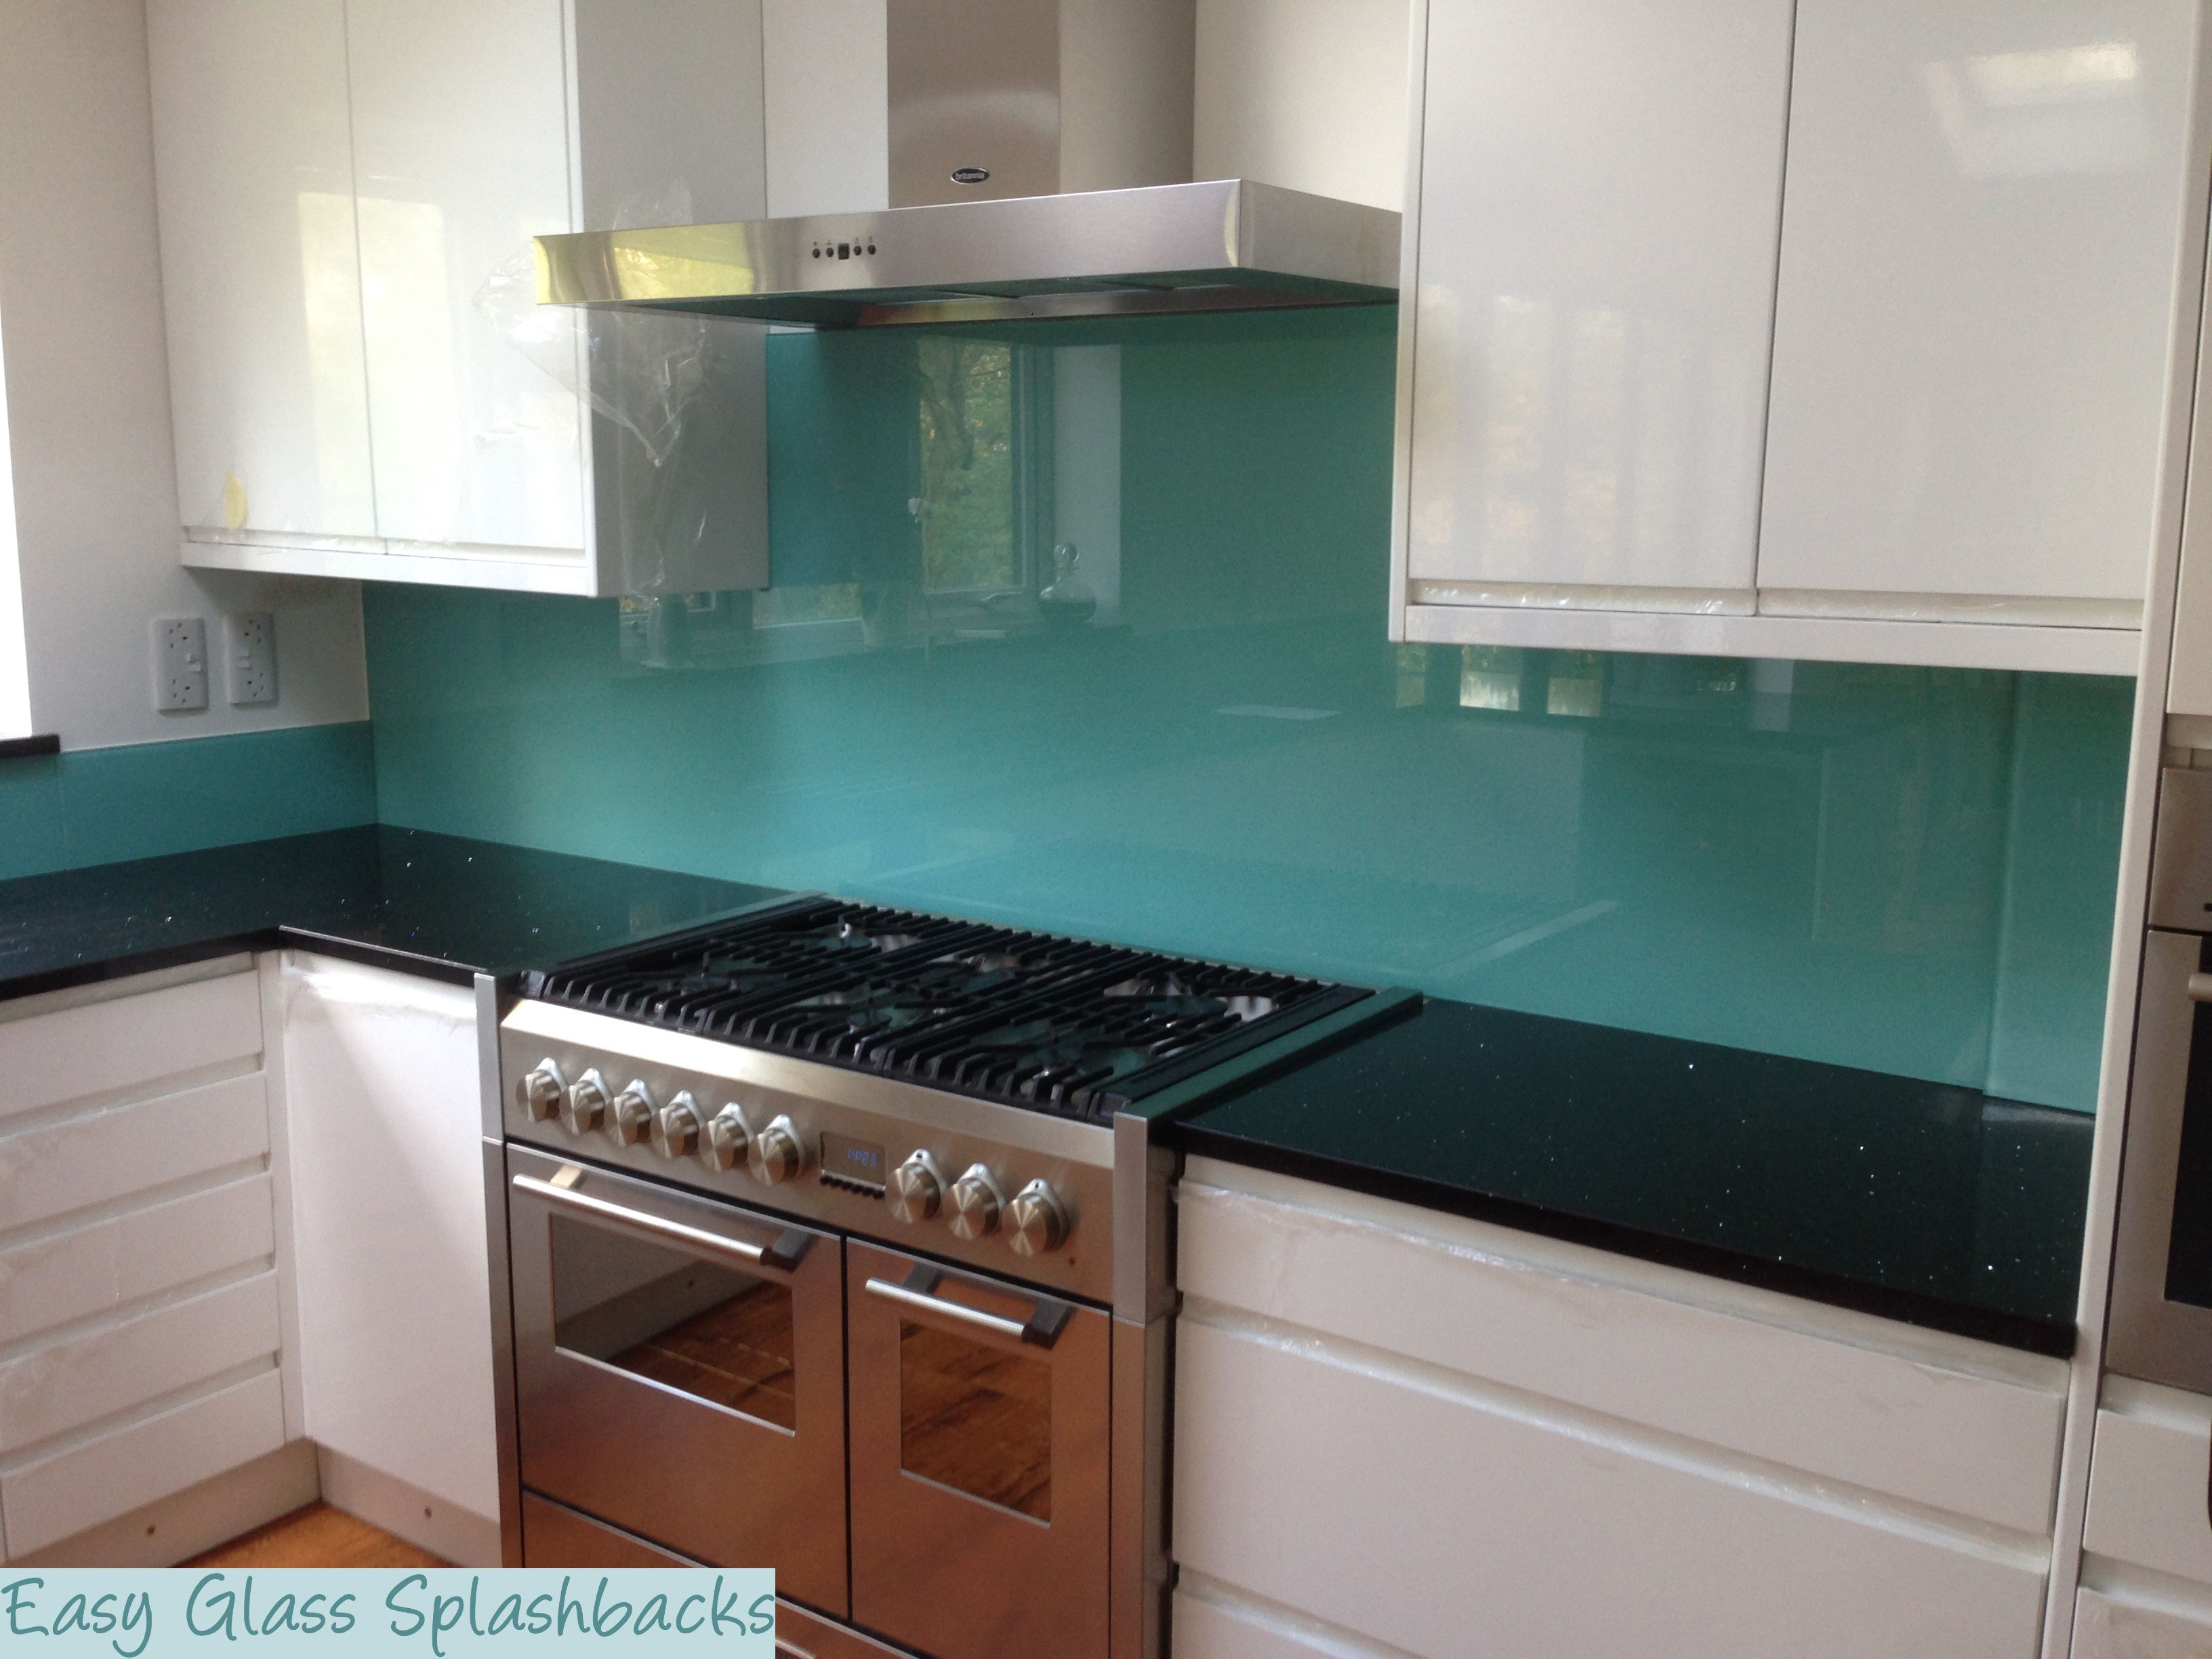 Turquoise Coloured Glass Splashback In A White Kitchen